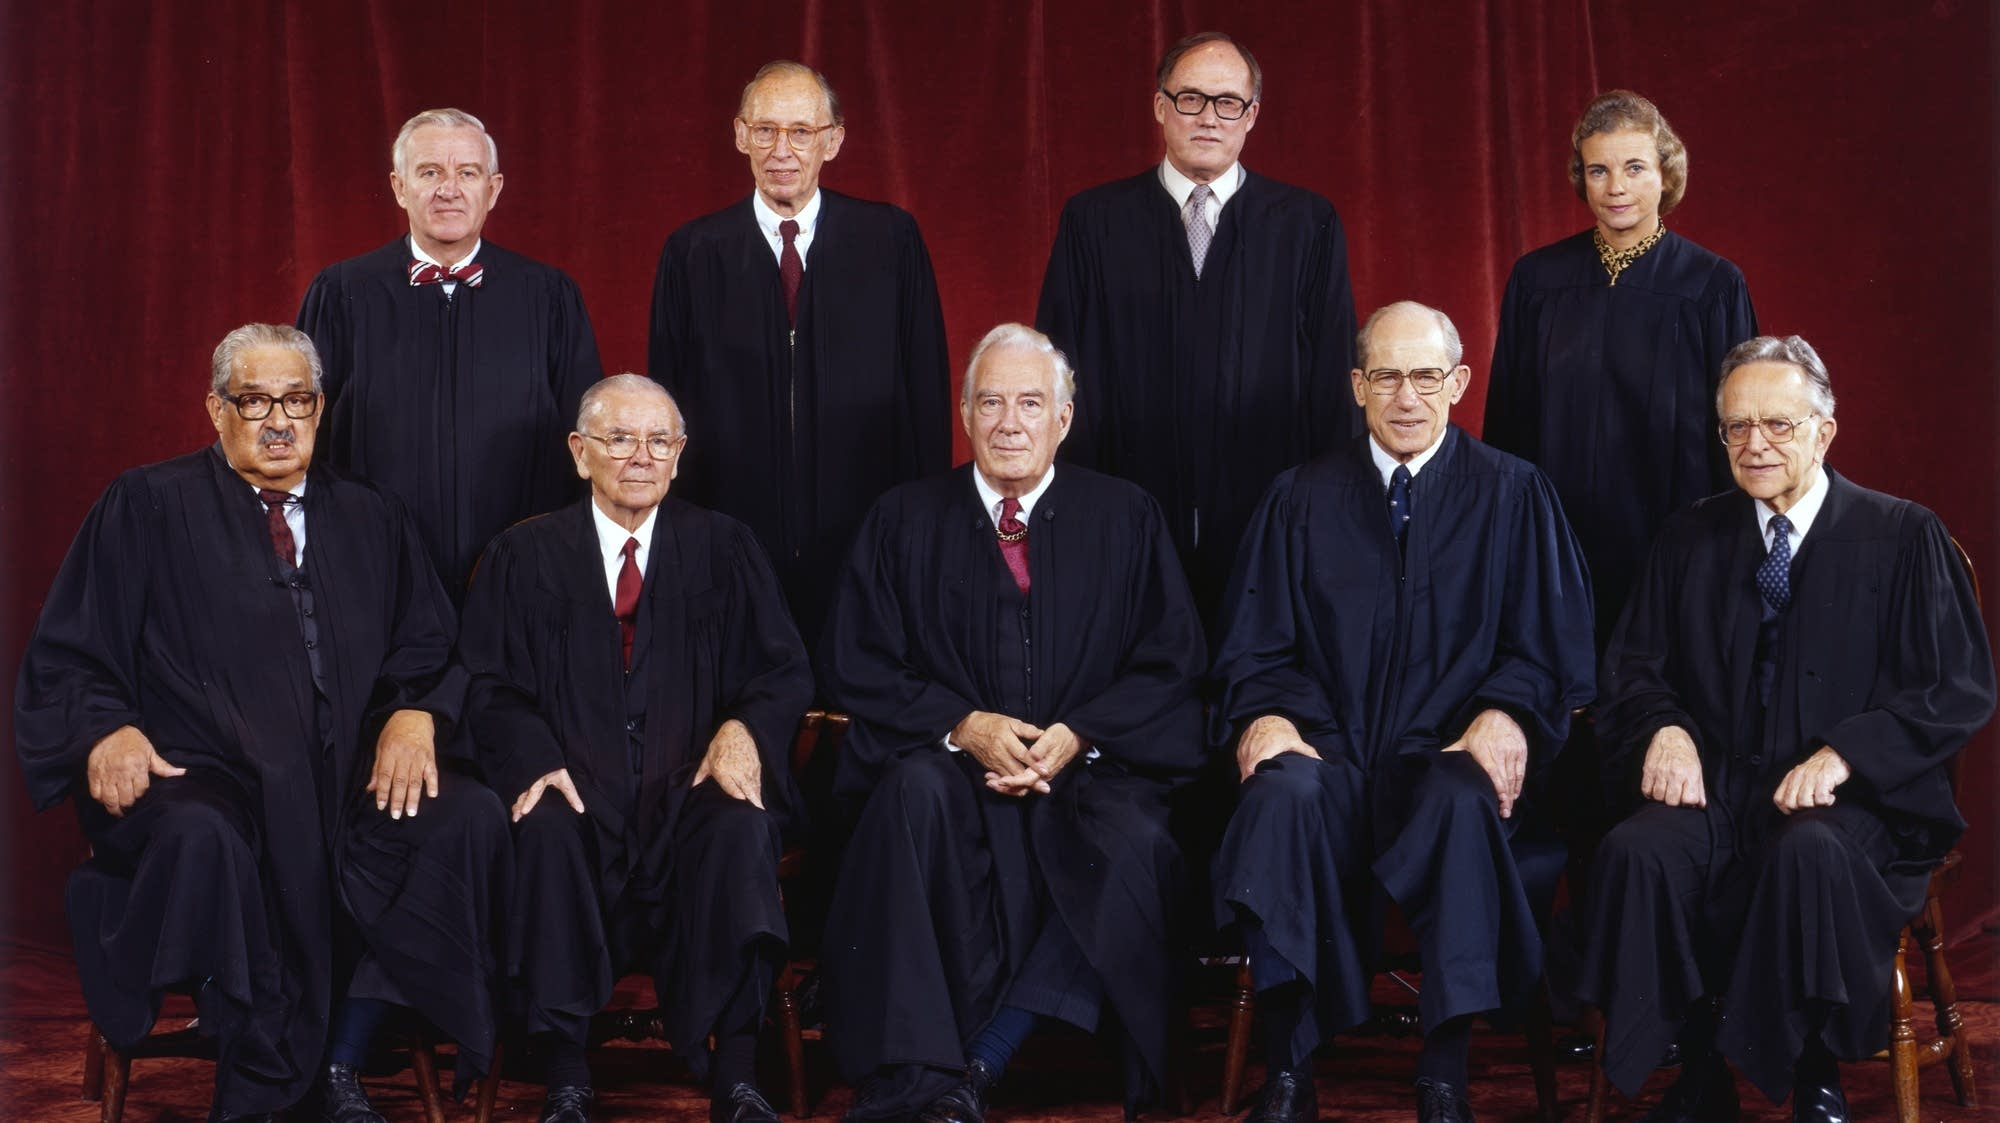 The Supreme Court in 1981